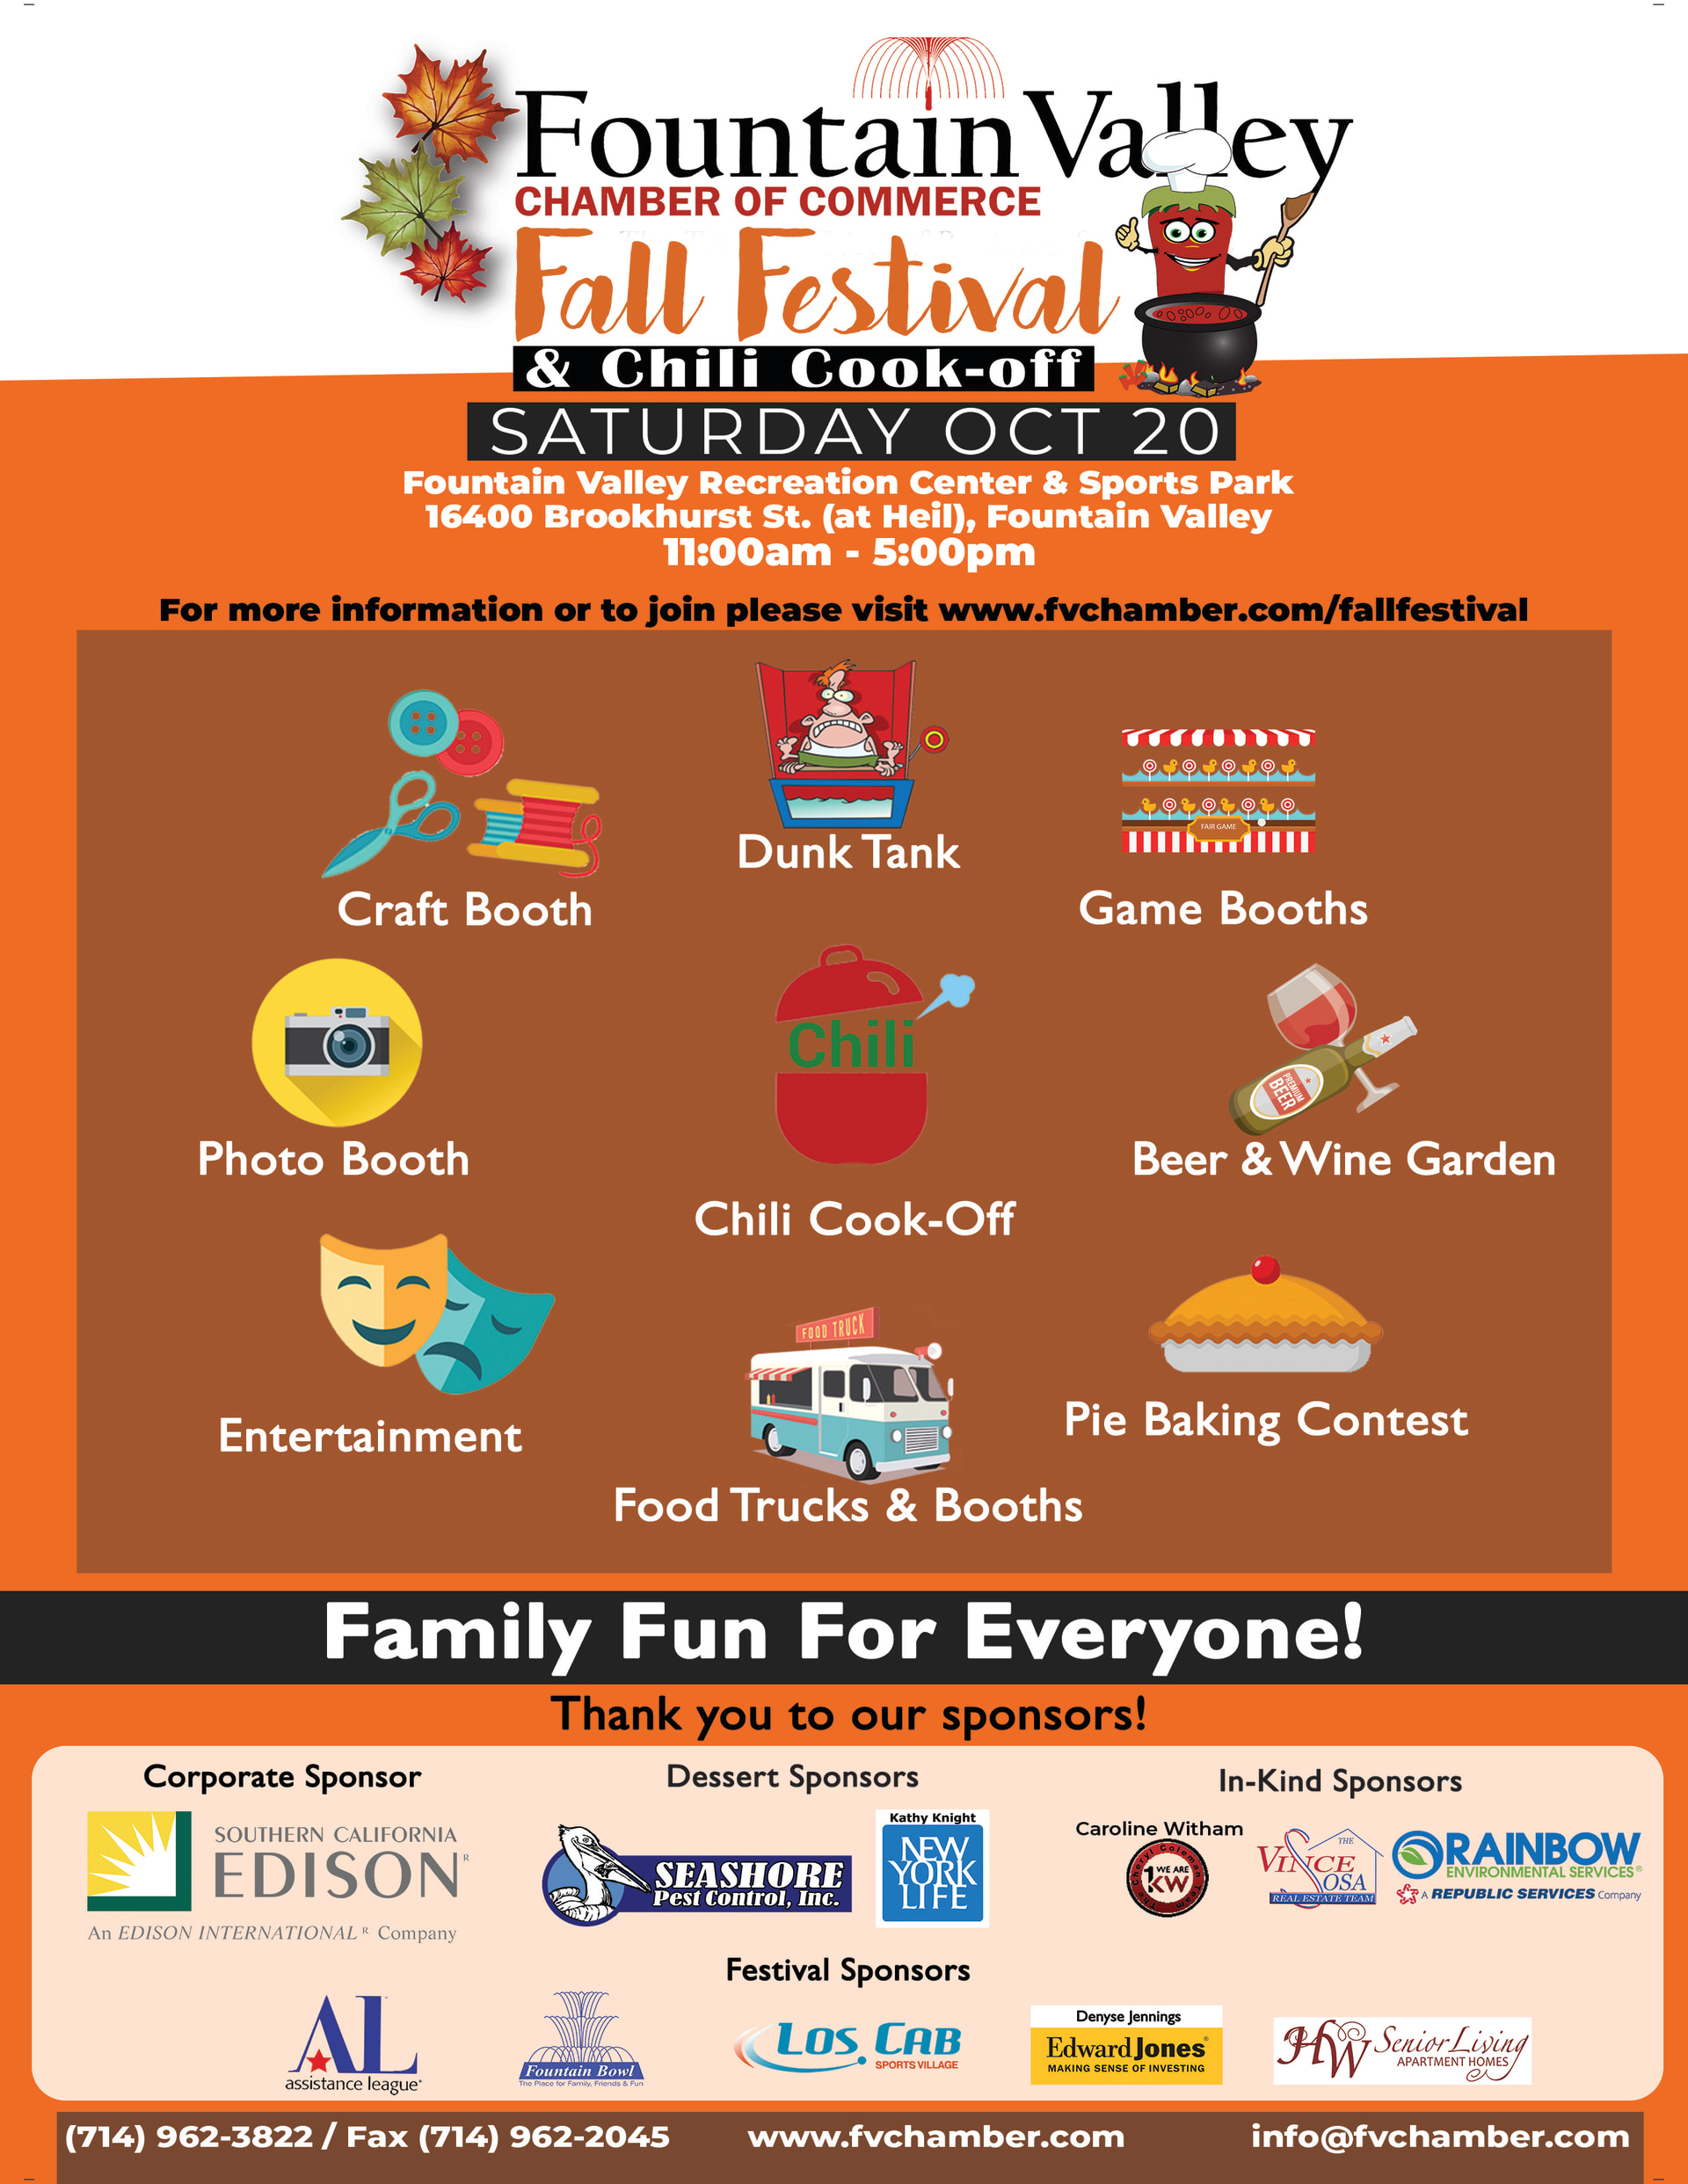 Fall Festival and Chili Cook-off